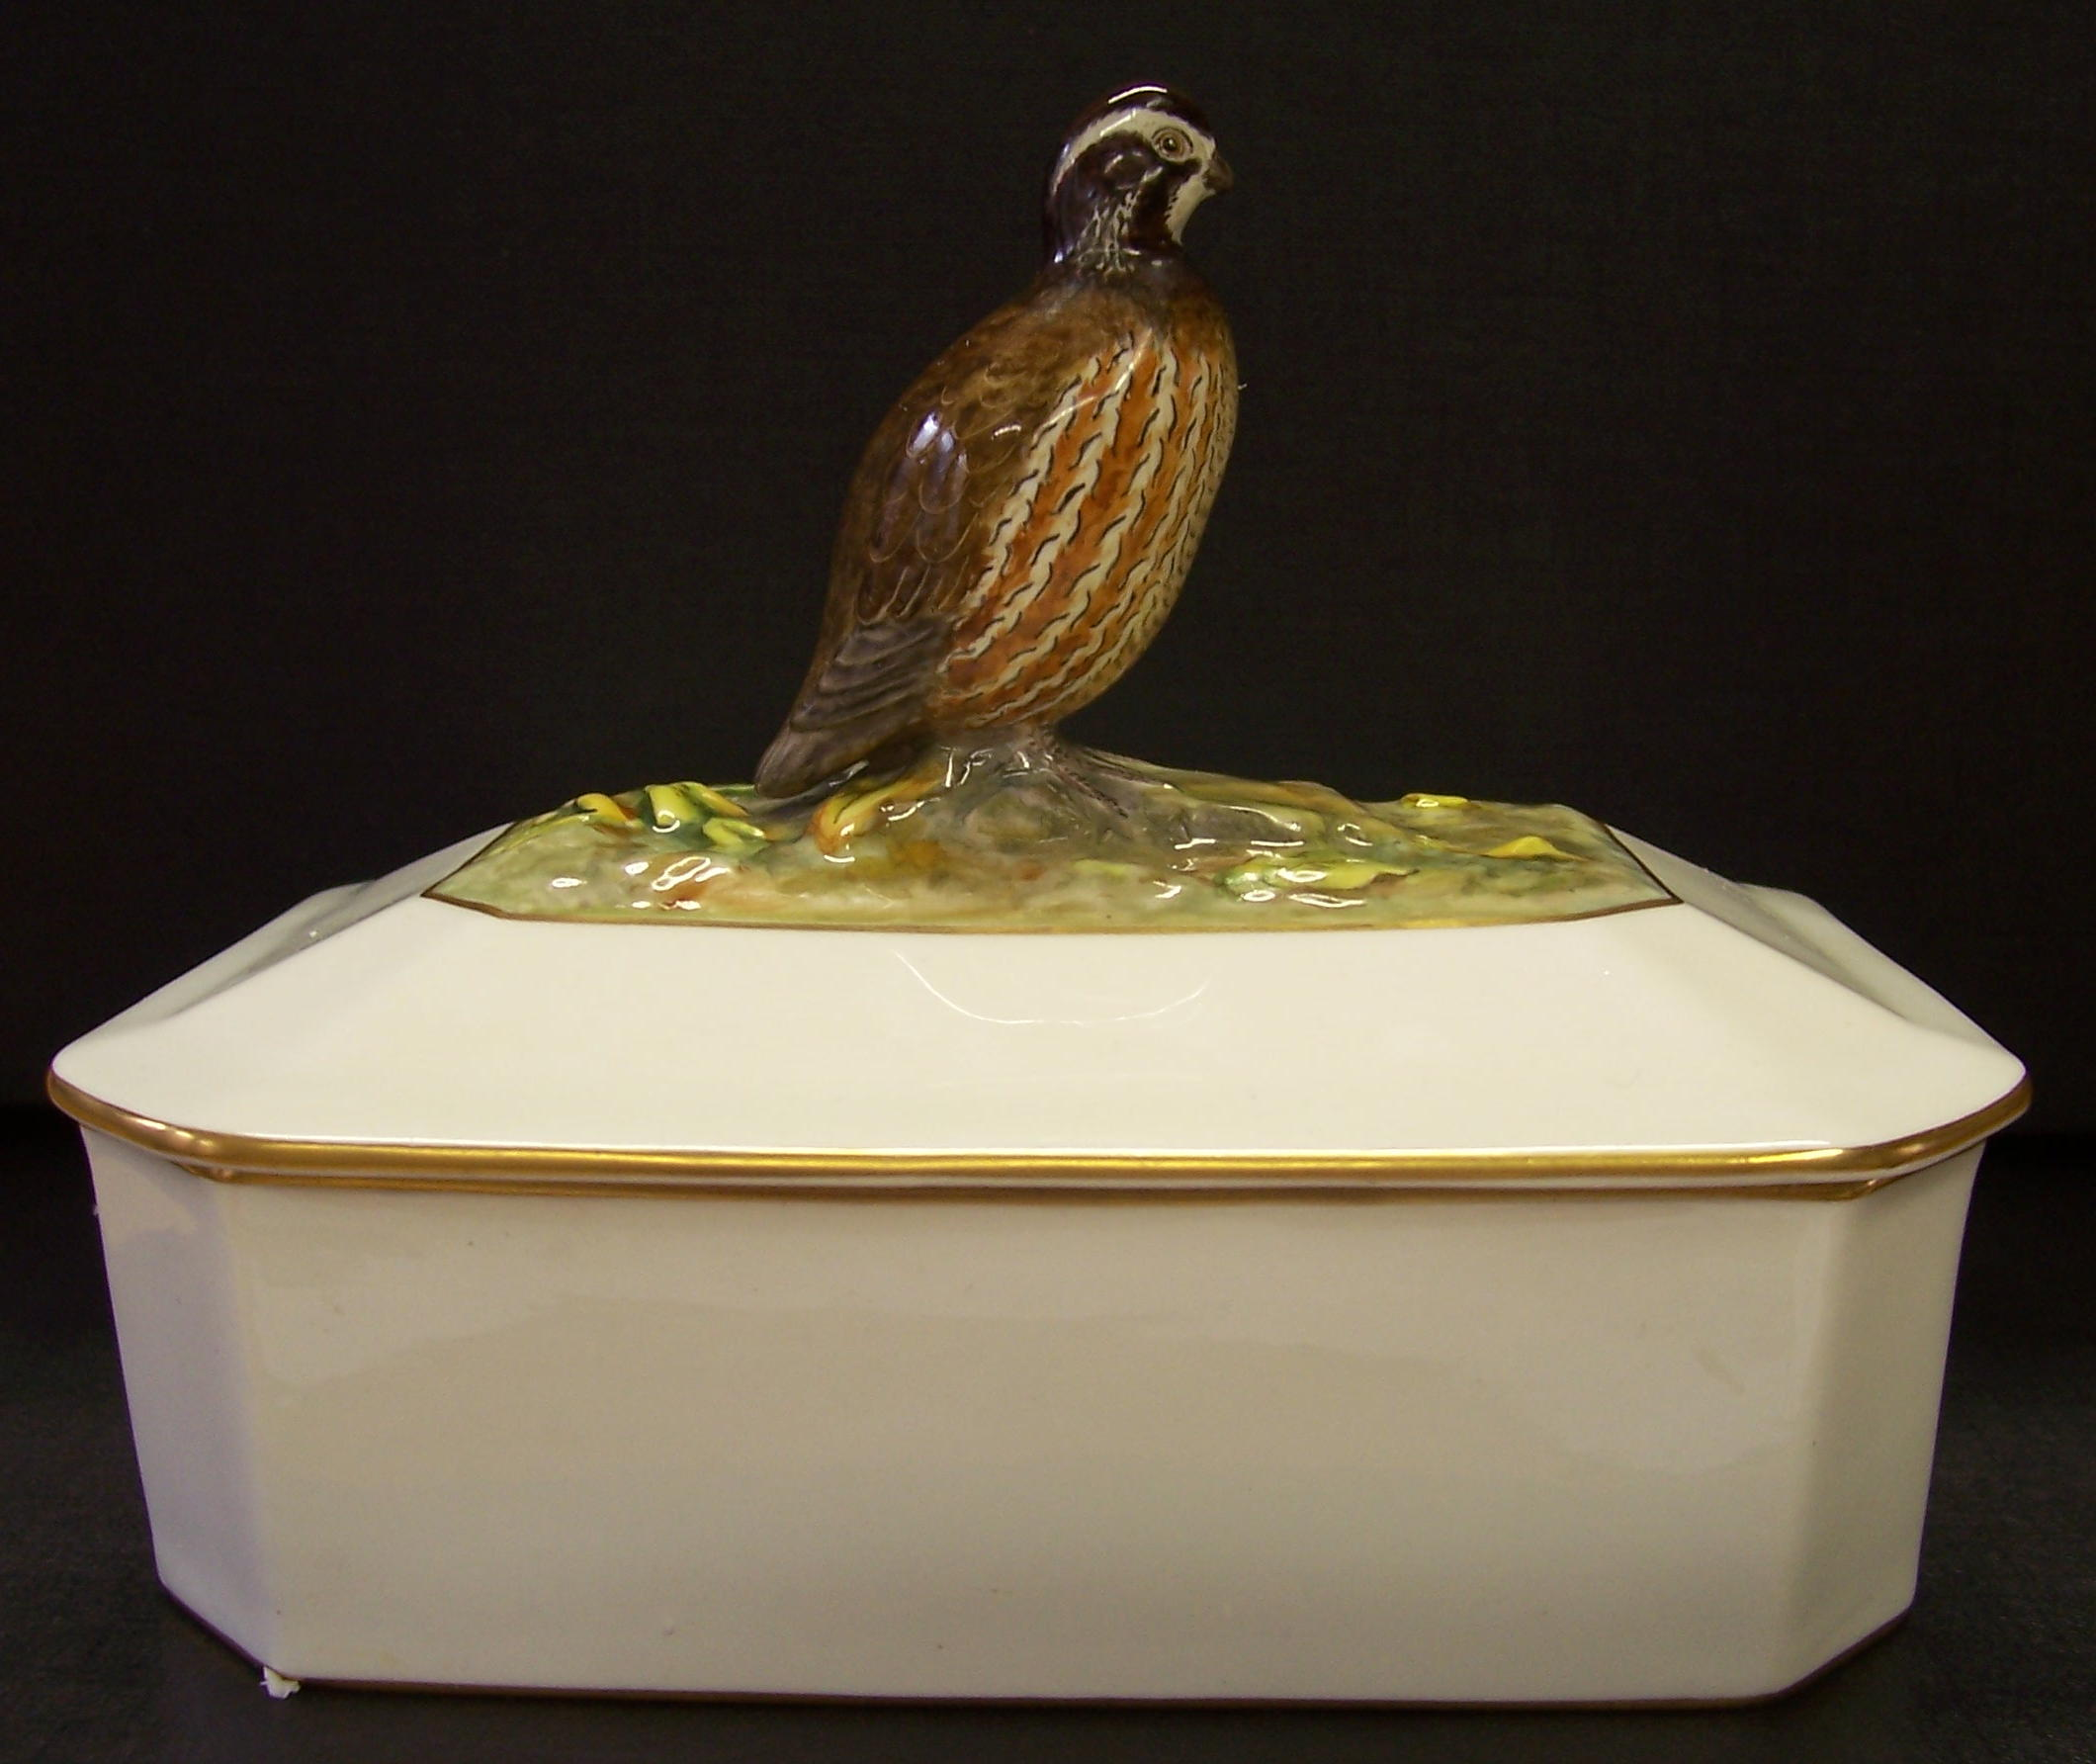 royal-crown-derby-box-1754-shape-bob-white-quail-on-lid